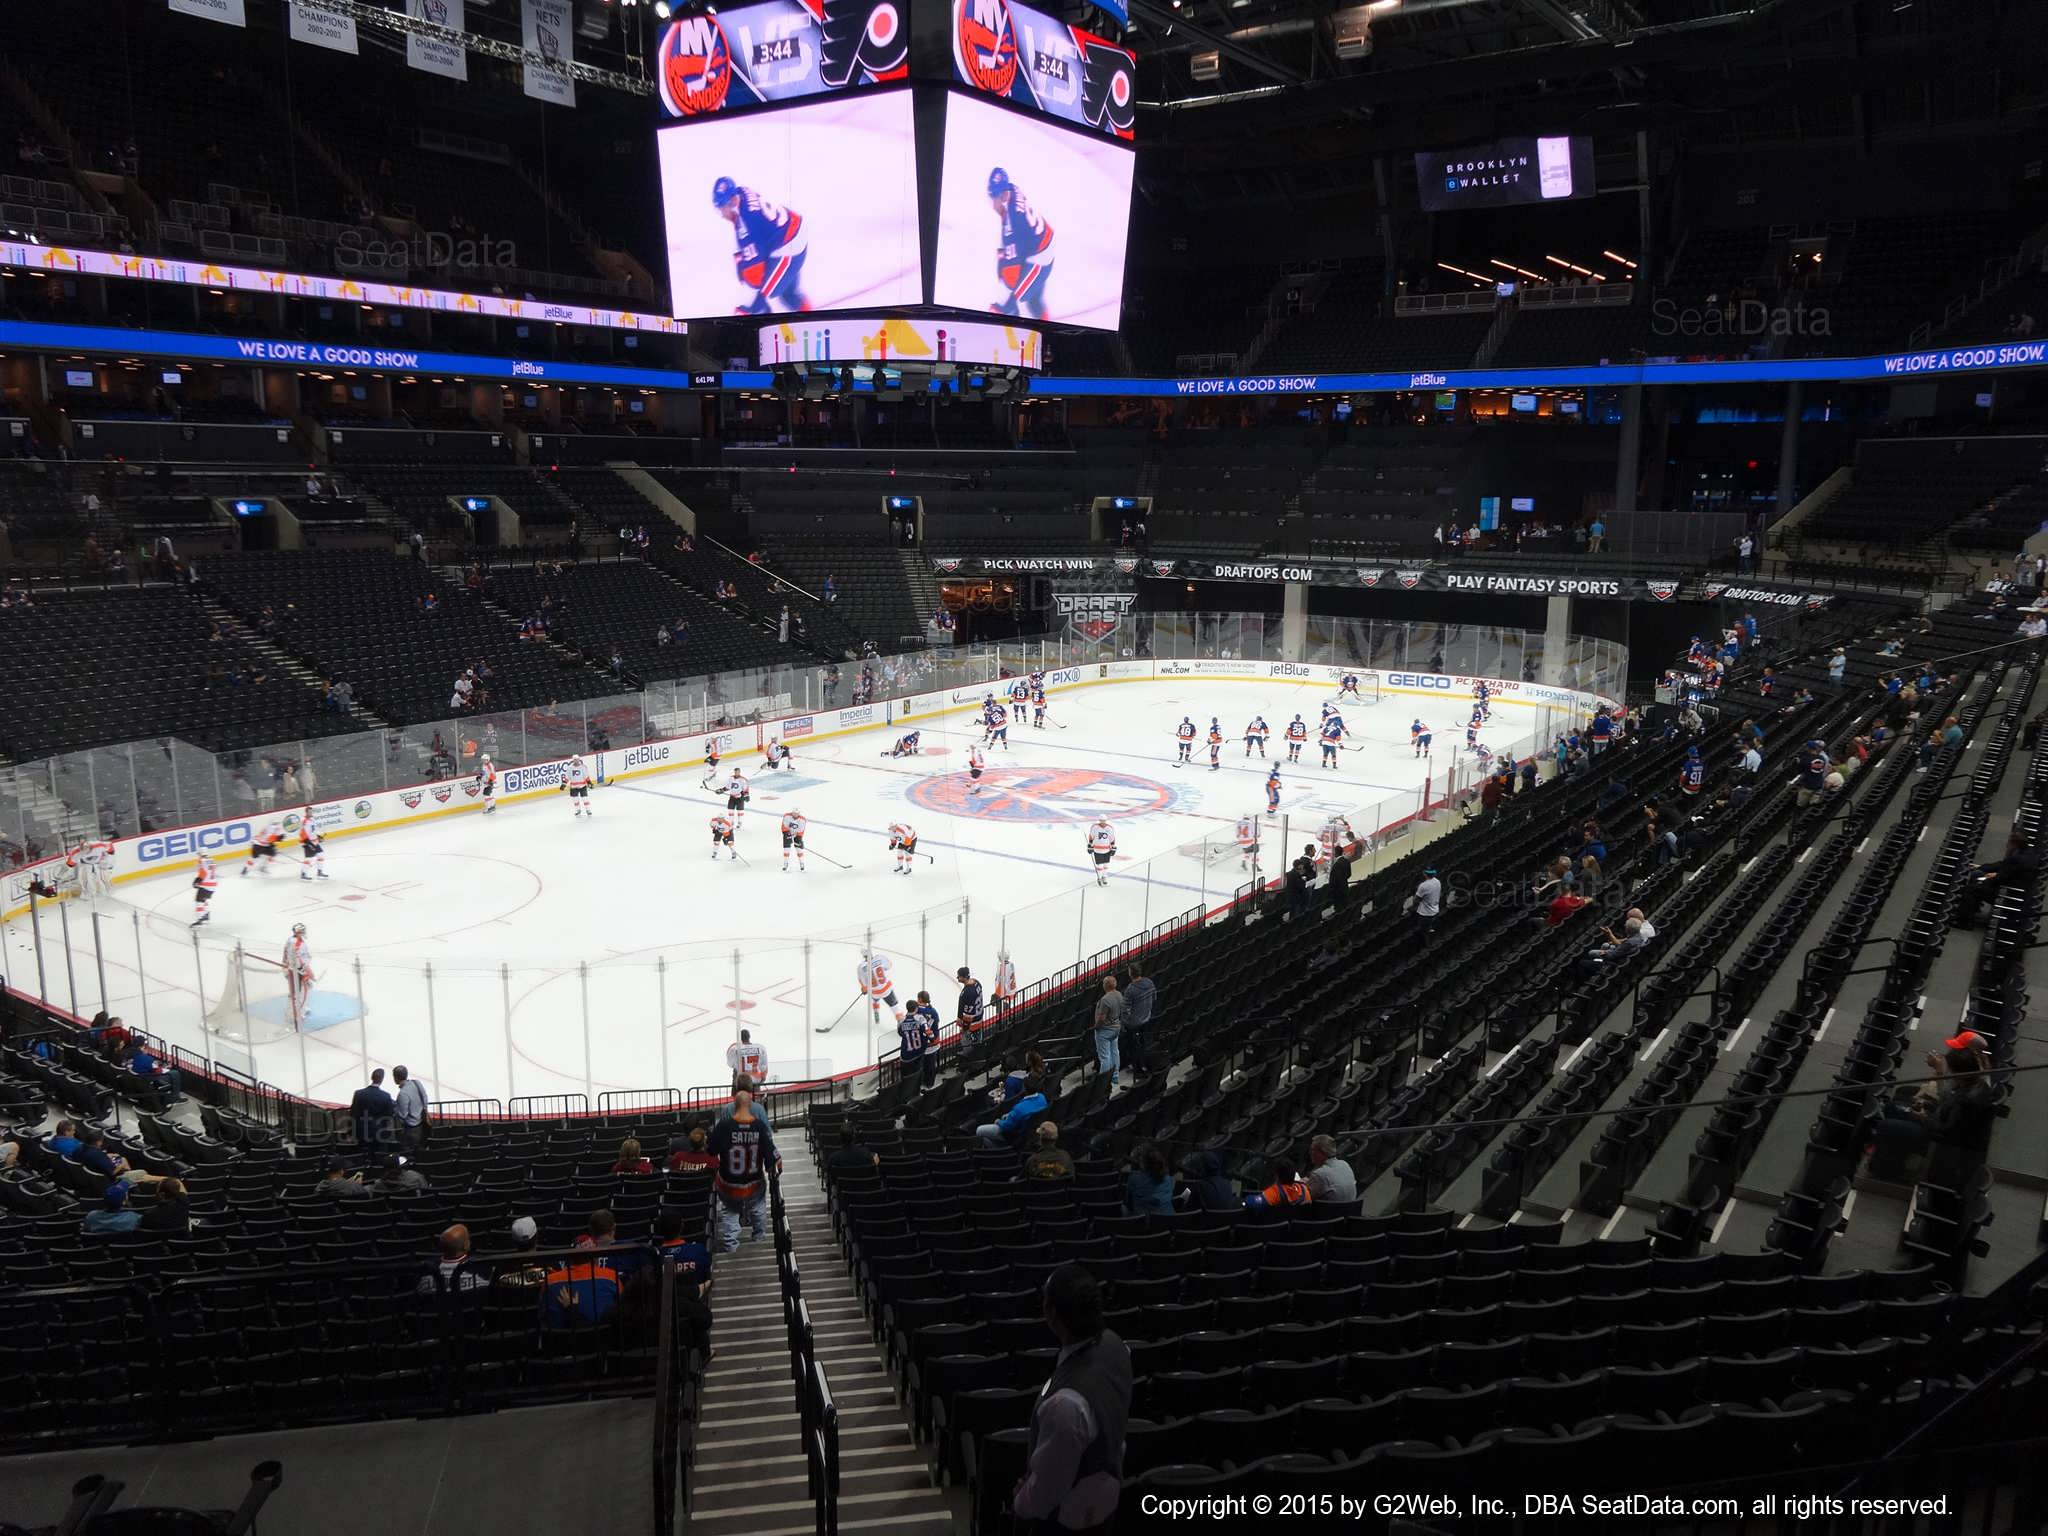 Seat View from Section 112 at the Barclays Center, home of the New York Islanders